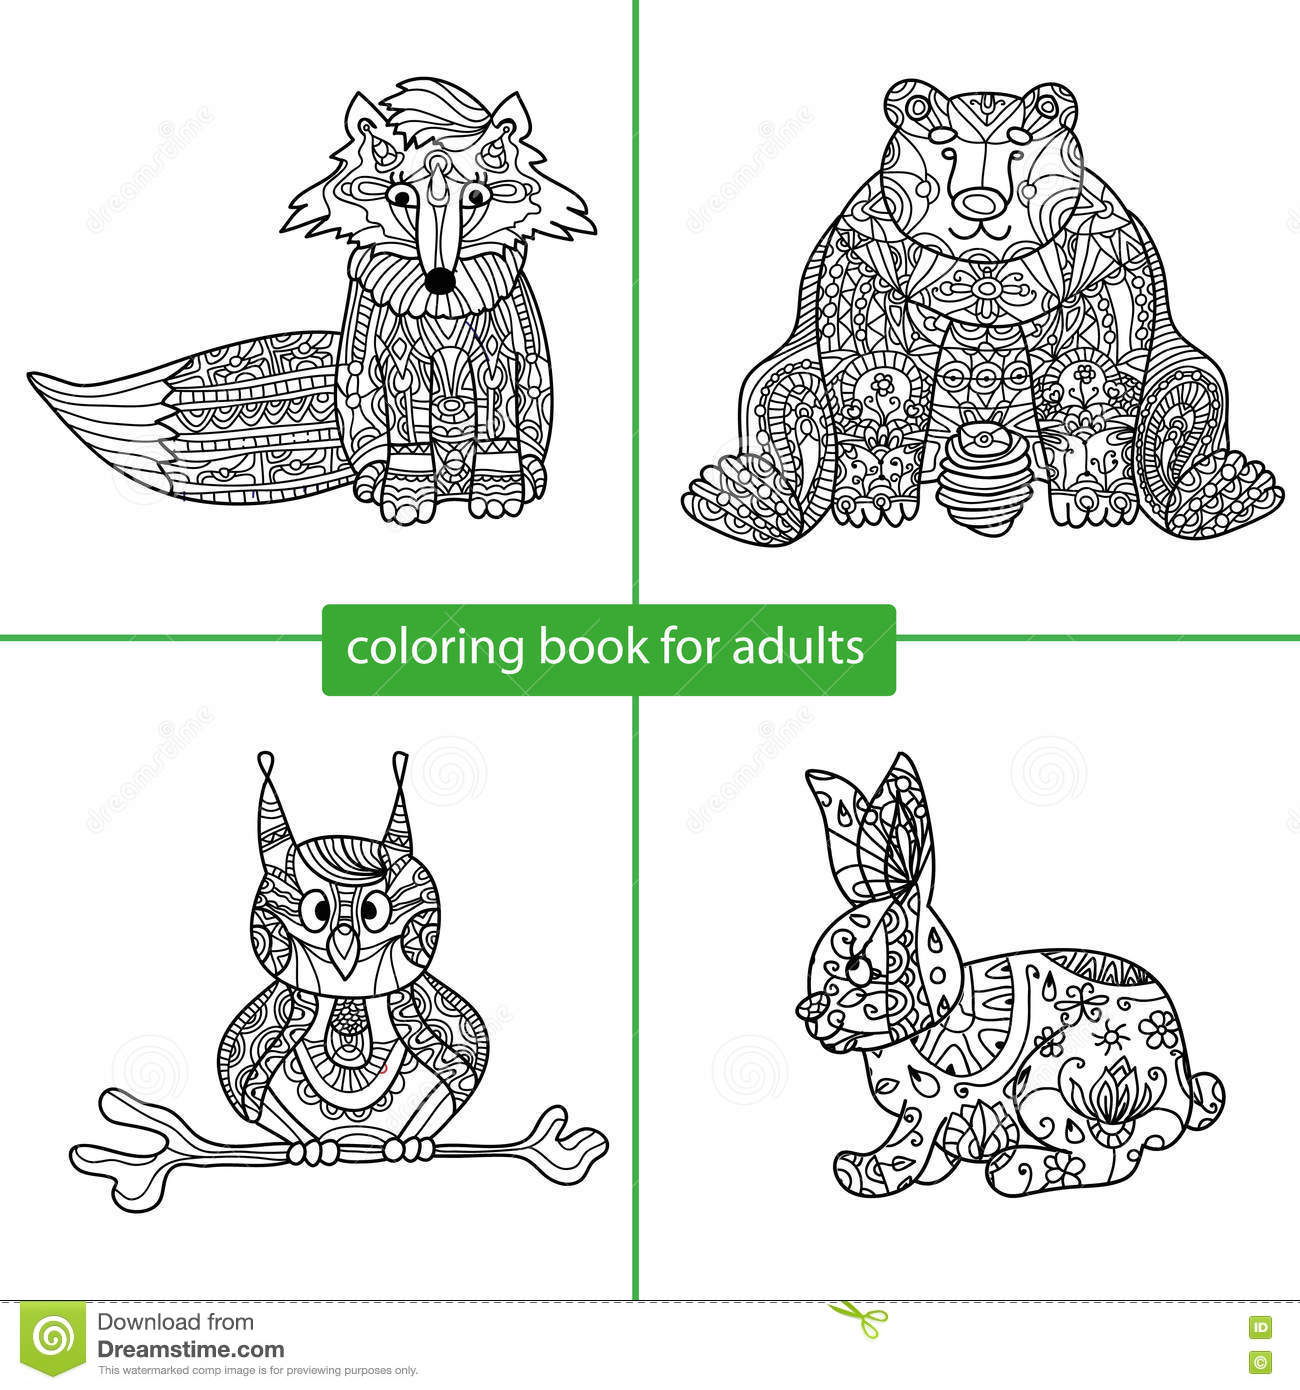 Zen coloring books for children - Coloring Book For Adults Cartoon Character Stock Images